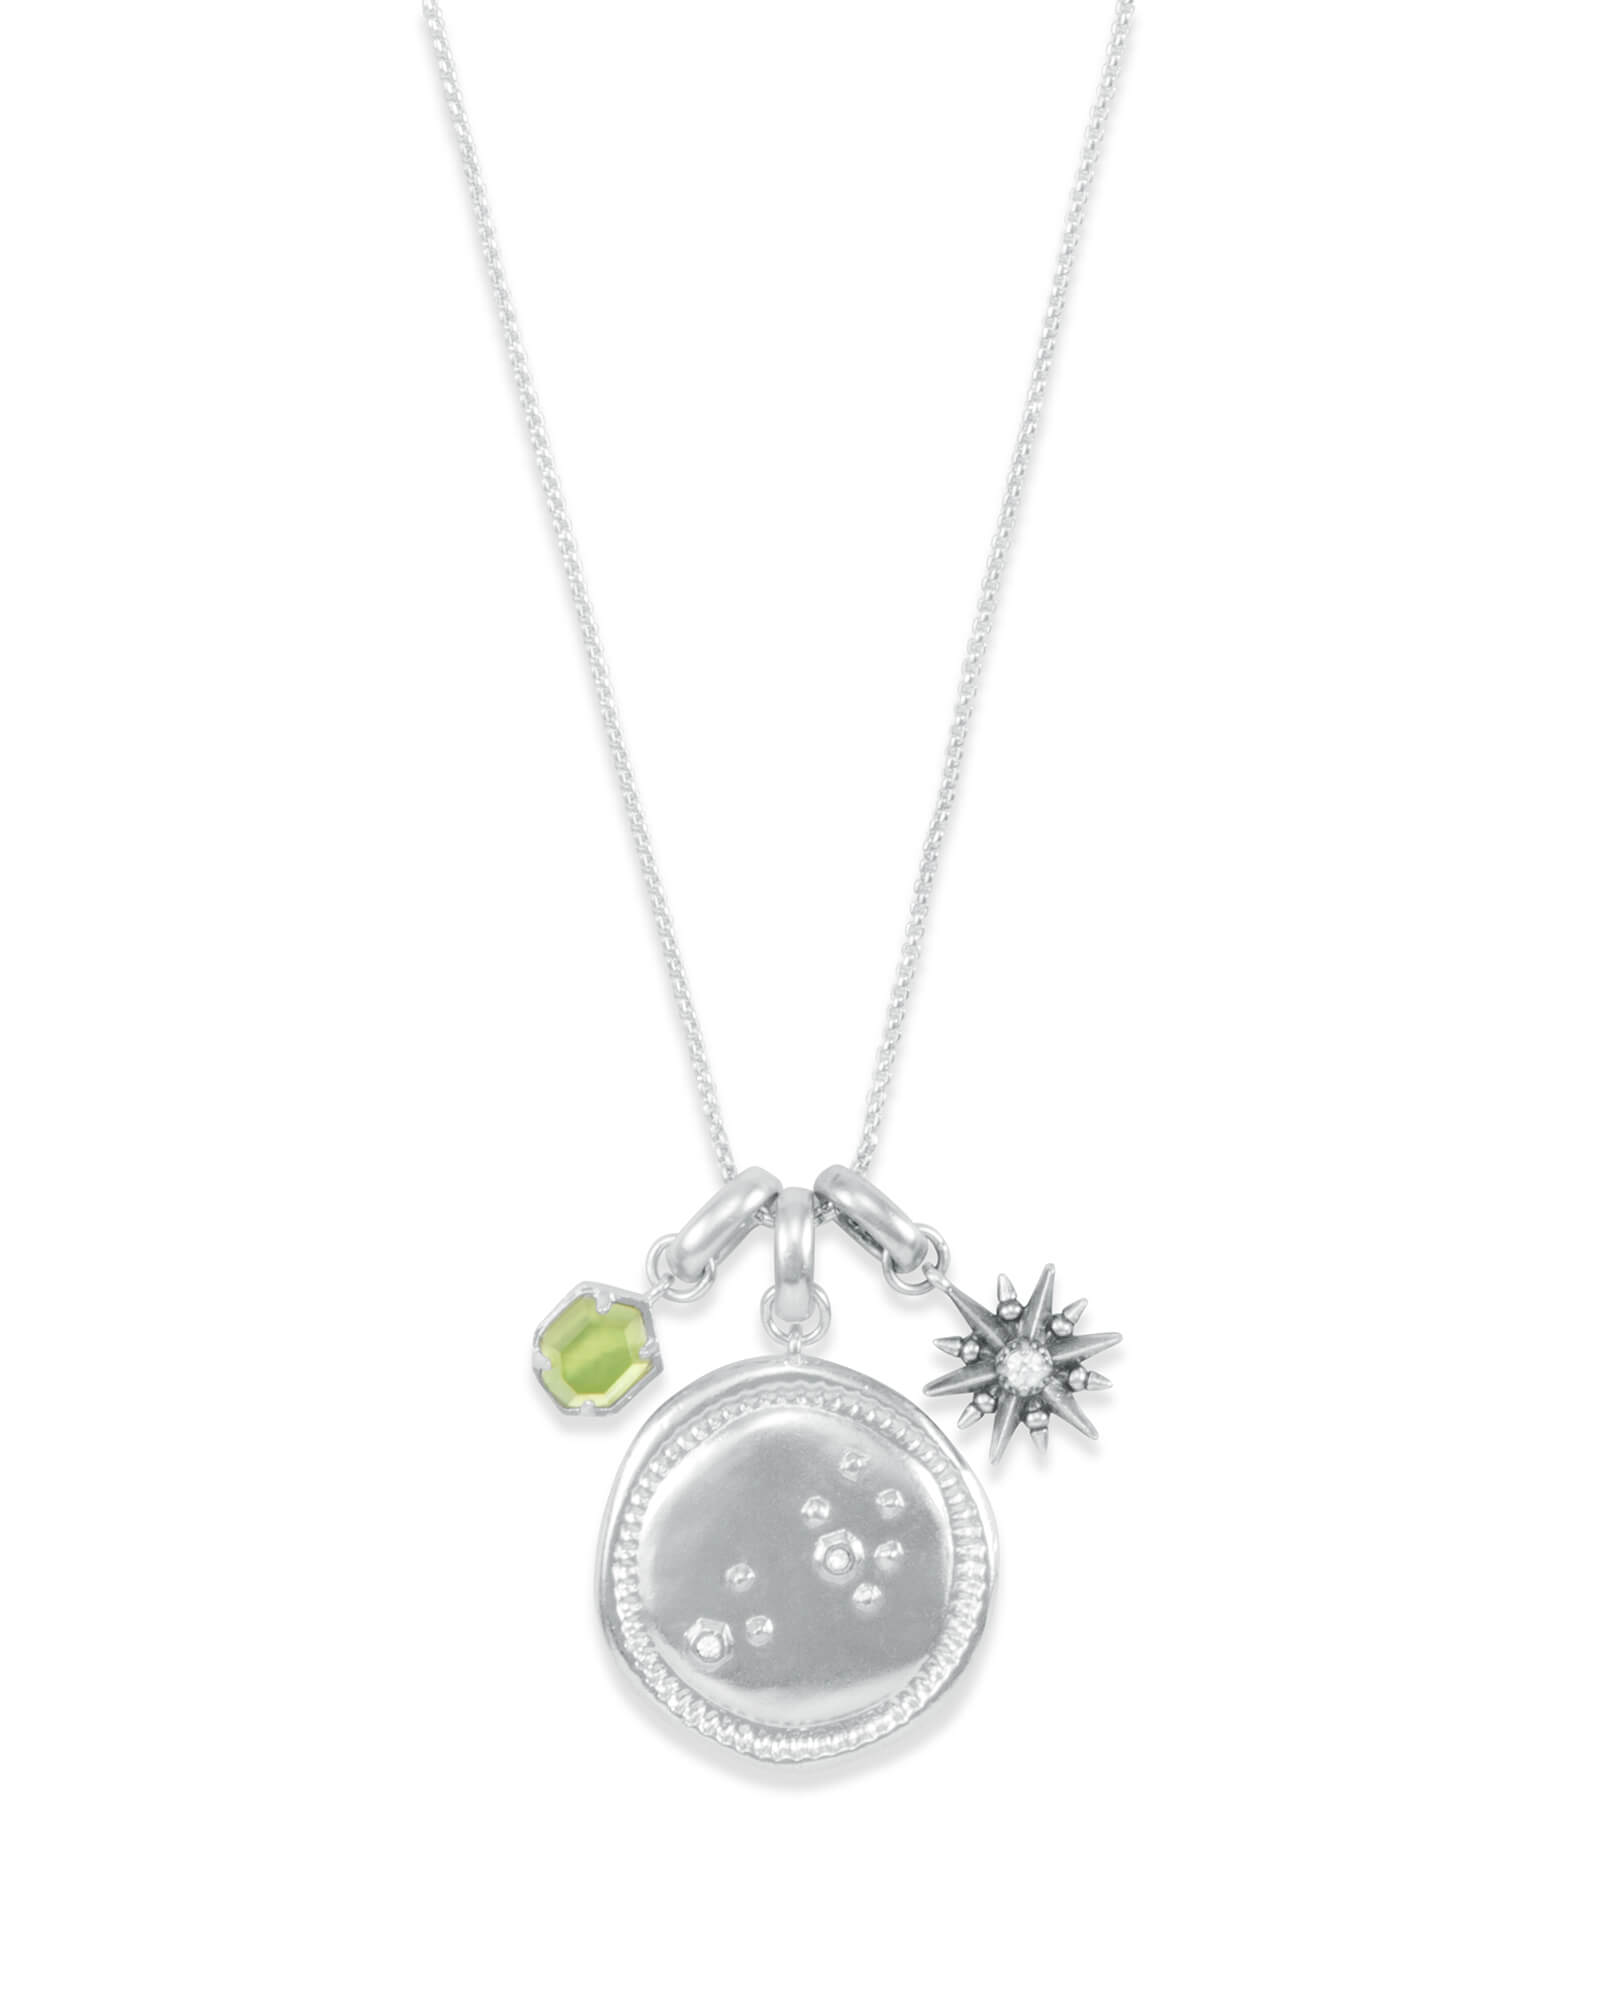 August Leo Charm Necklace Set in Silver